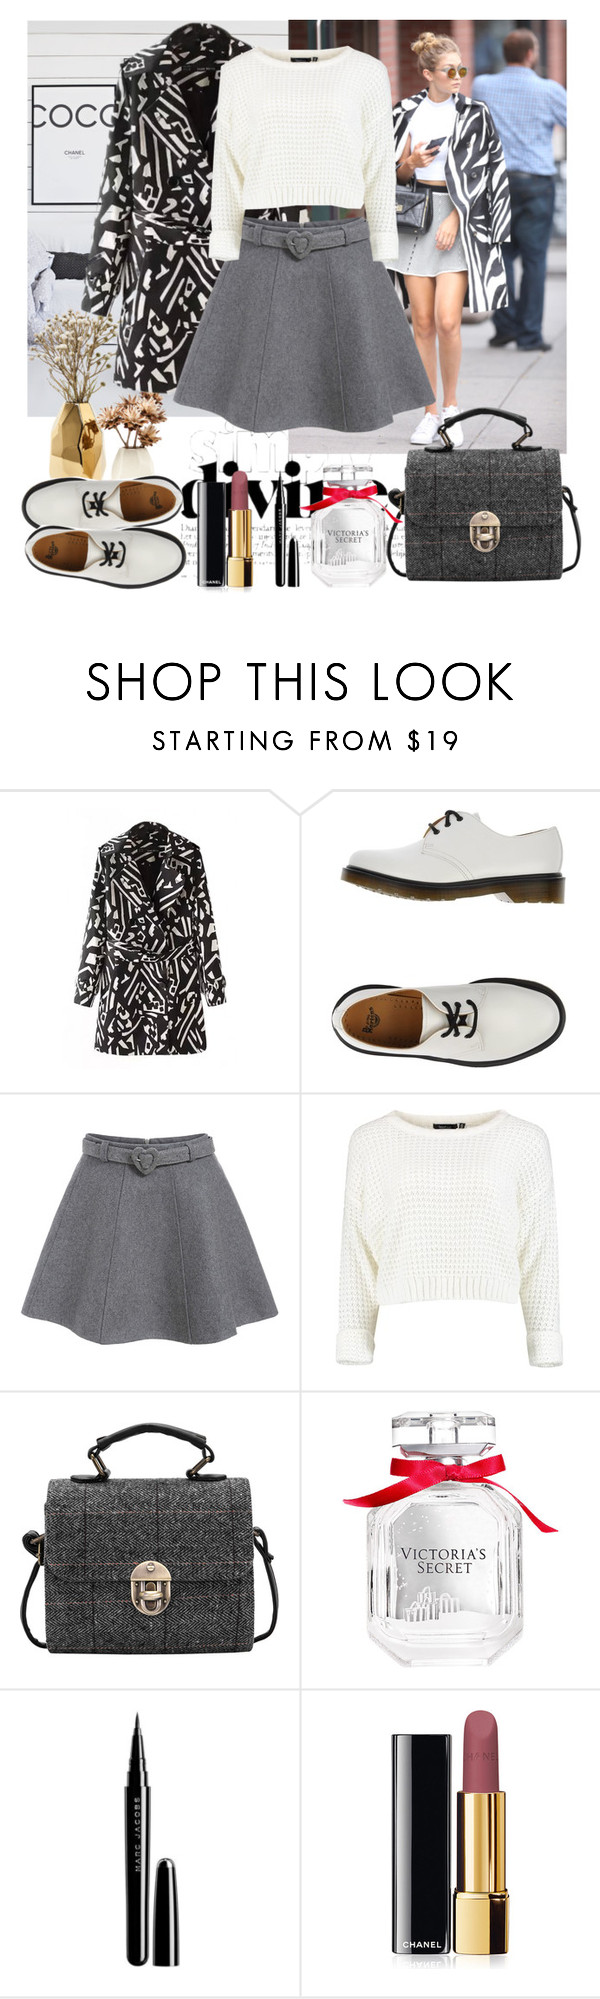 """""""Untitled #551"""" by misaflowers ❤ liked on Polyvore featuring Nate Berkus, DVF, Dr. Martens, Victoria's Secret, Marc Jacobs and Chanel"""